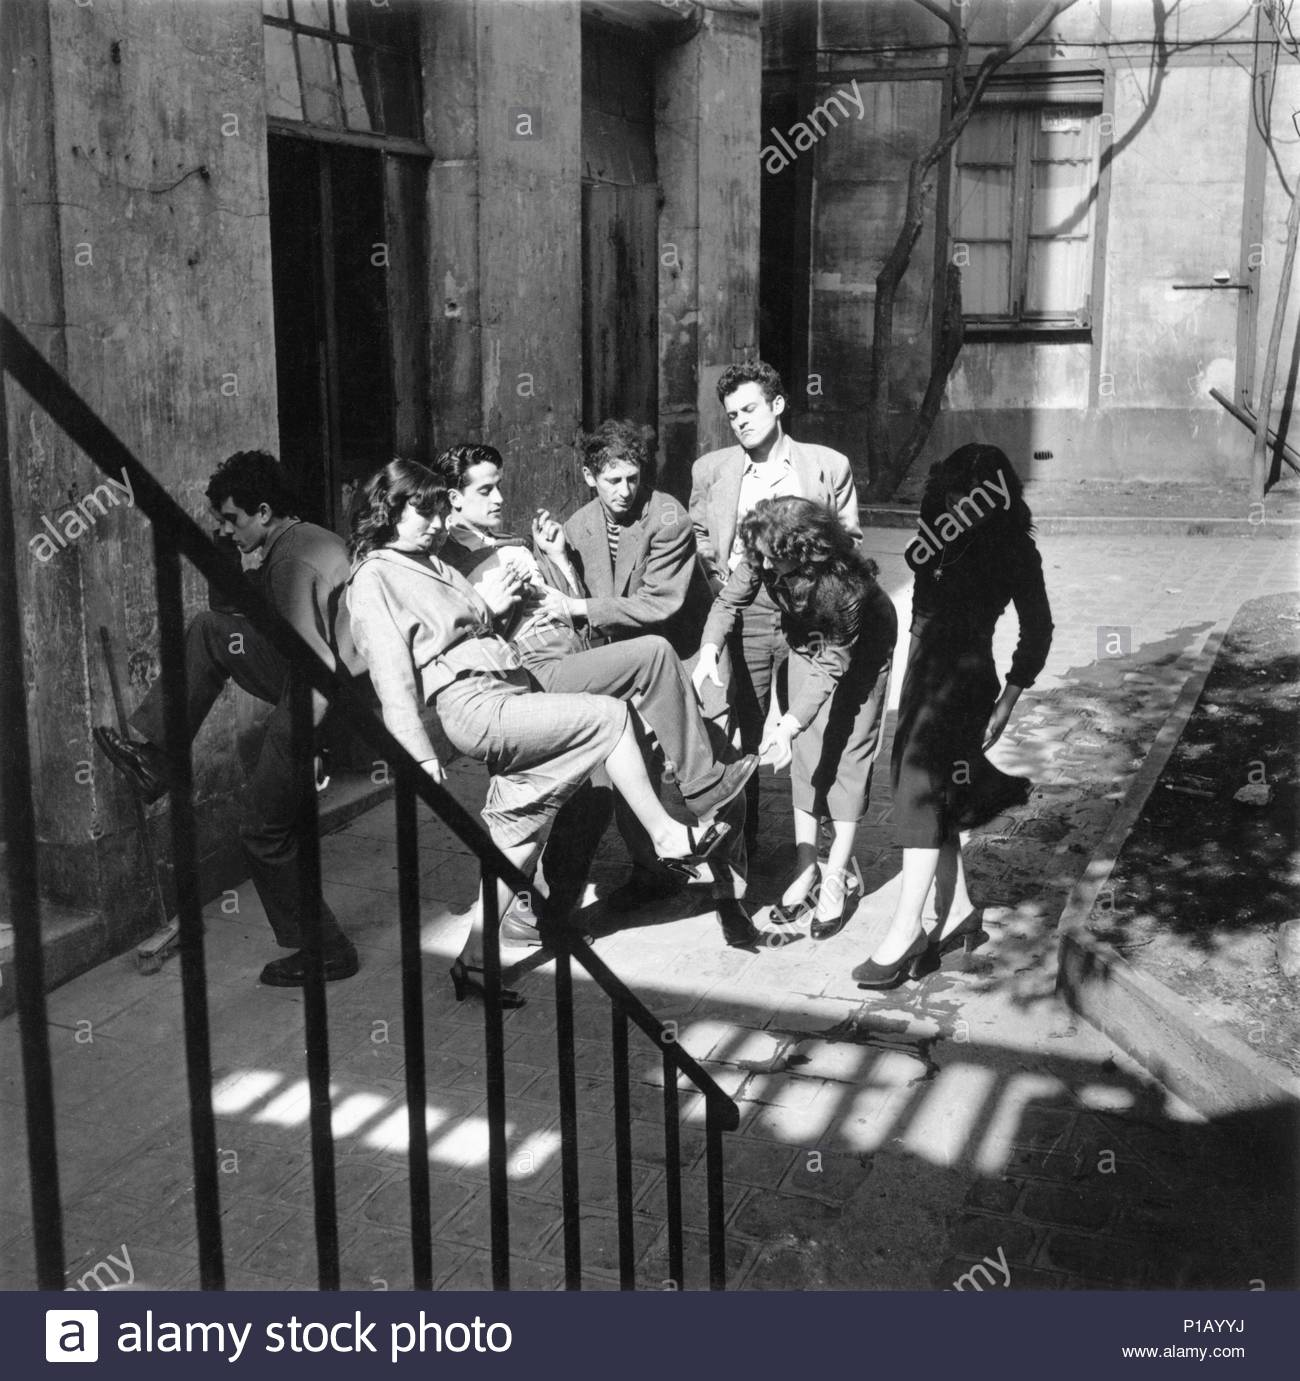 Marcel Marceau, the French mime who created the character 'Bip'.   Marceau rehearsing with his actors.   Paris, 1951. Location: Townscape, Paris, France. - Stock Image